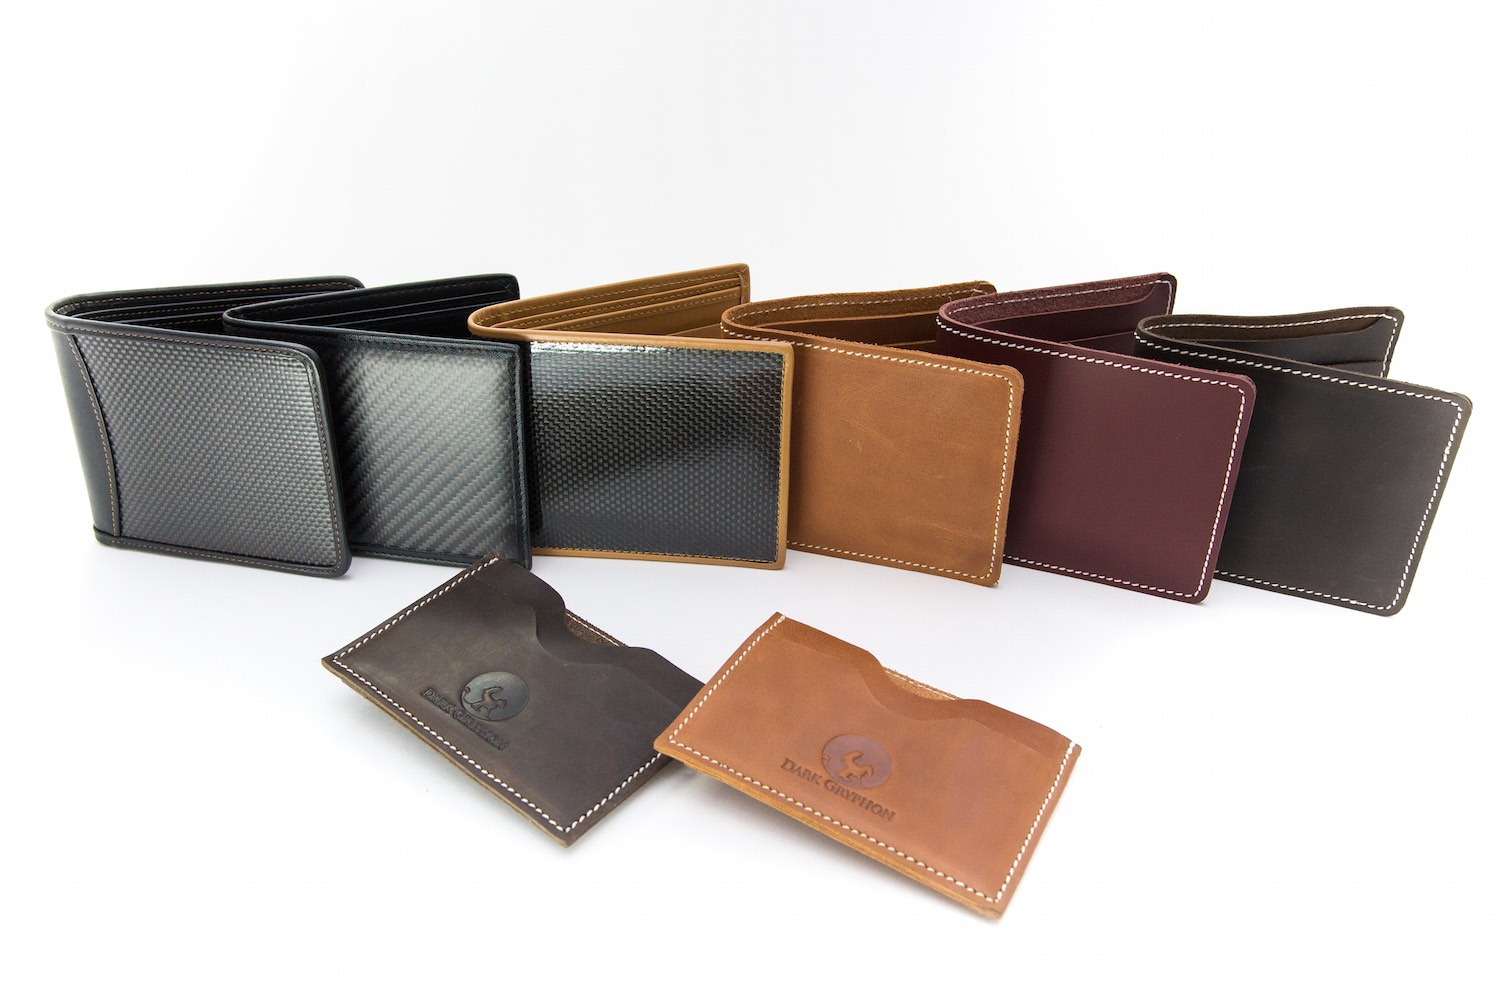 dark-gryphon-carbon-fiber-wallets-3